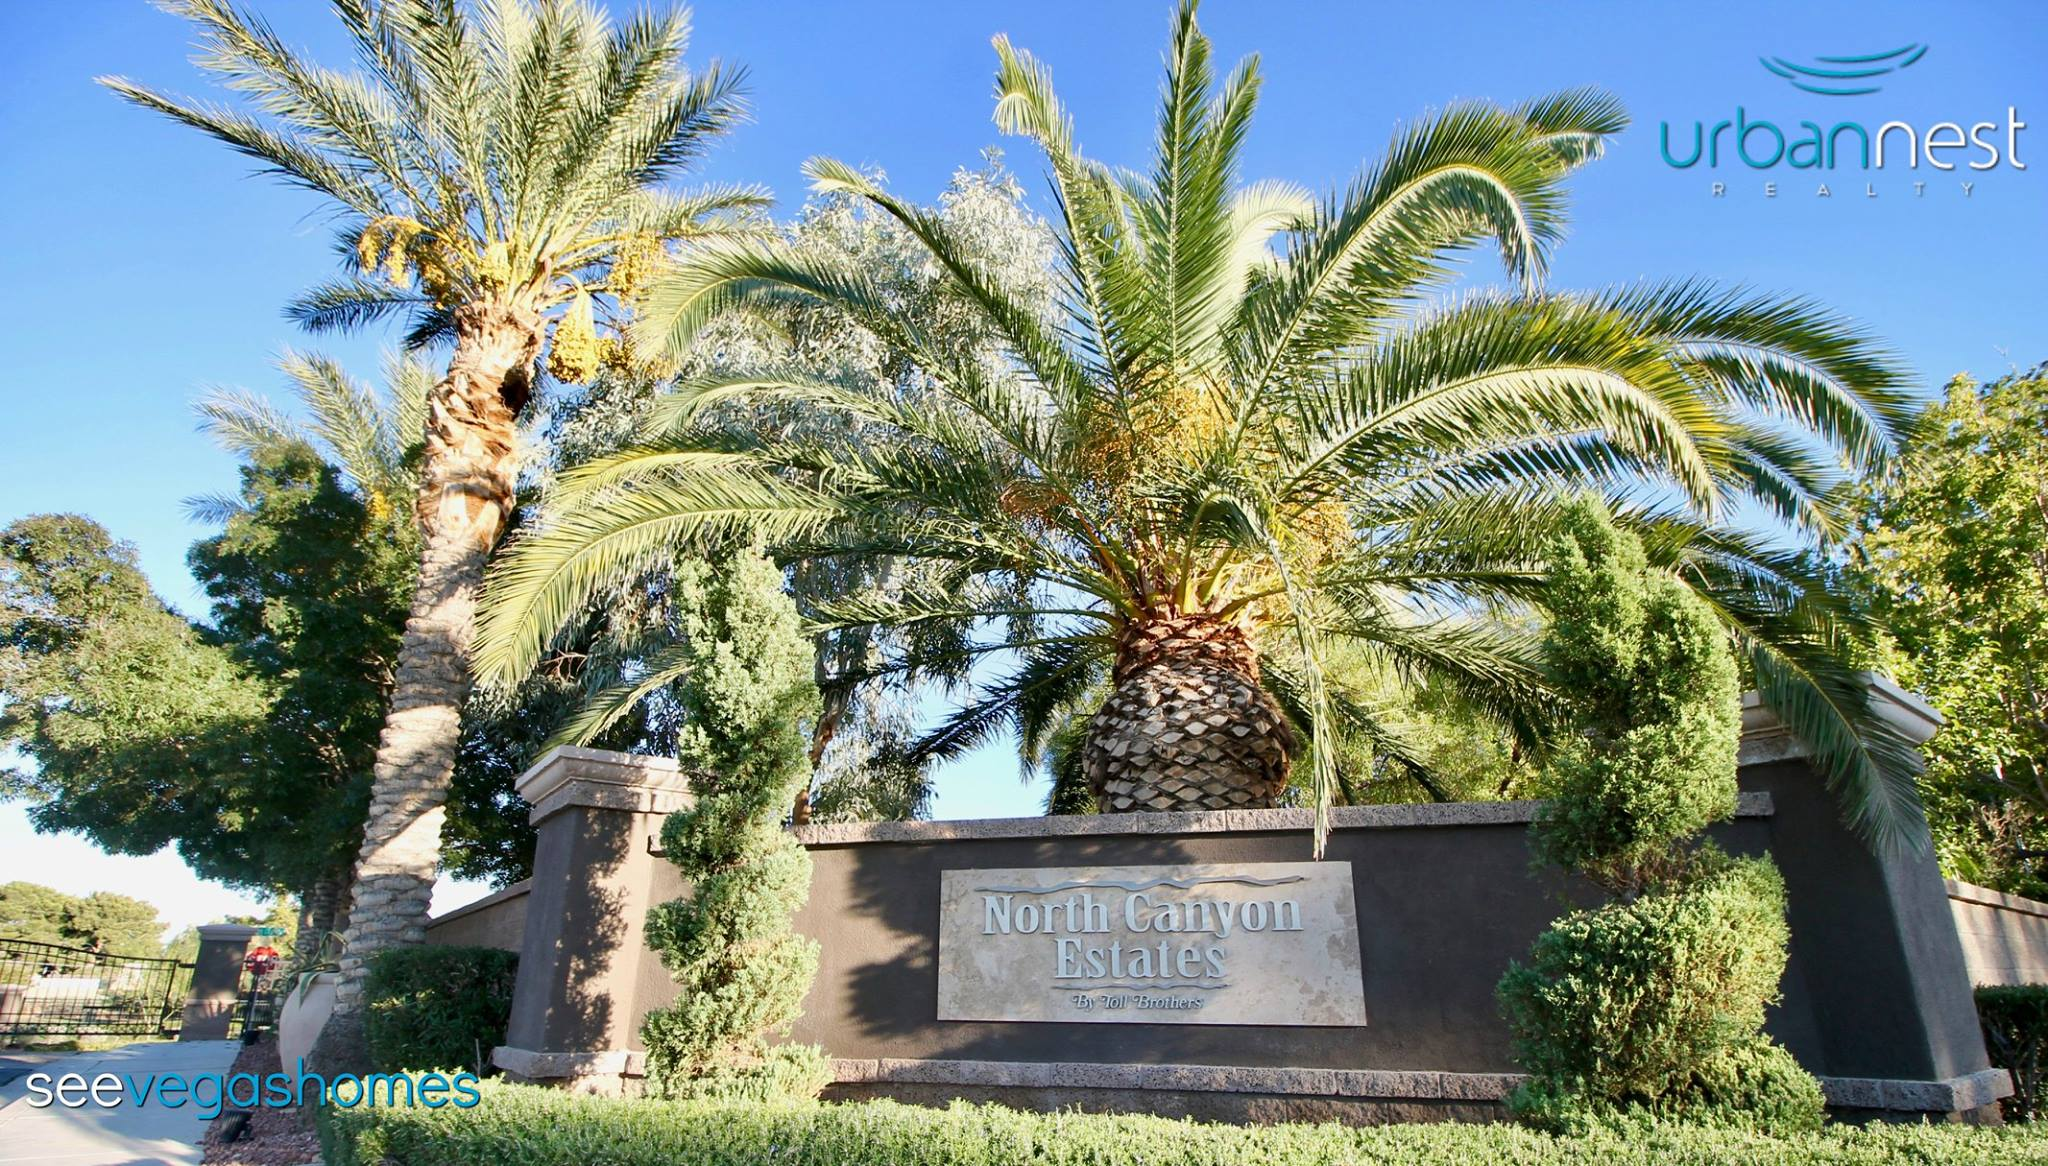 North Canyon Estates Toll Brothers Las Vegas NV 89149 SeeVegasHomes